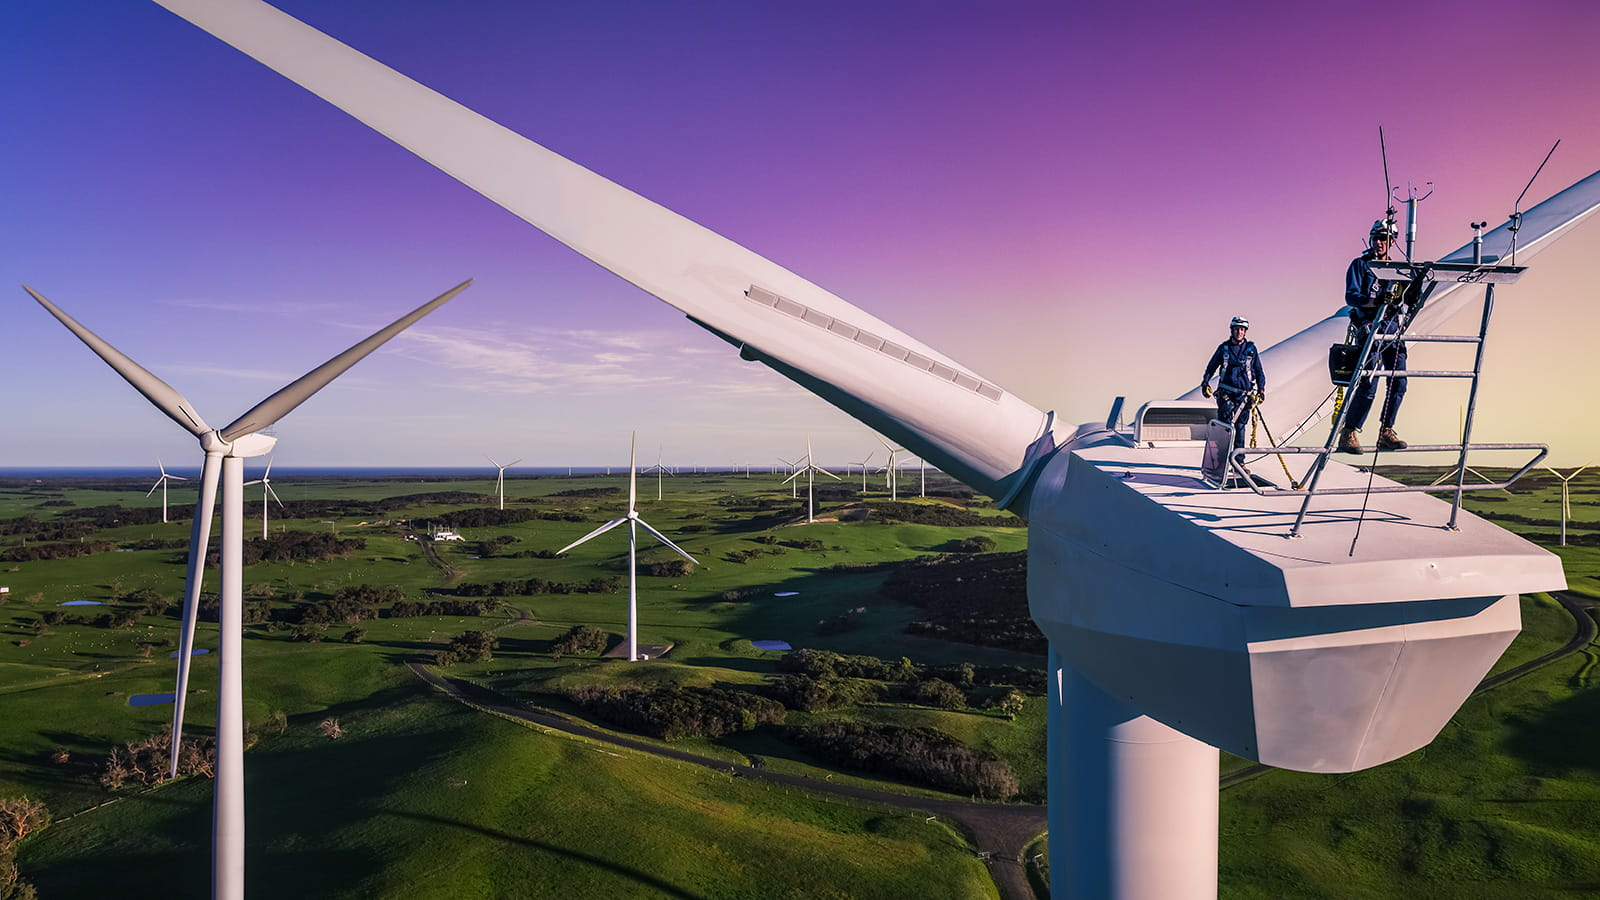 Engineers on top of a wind turbine